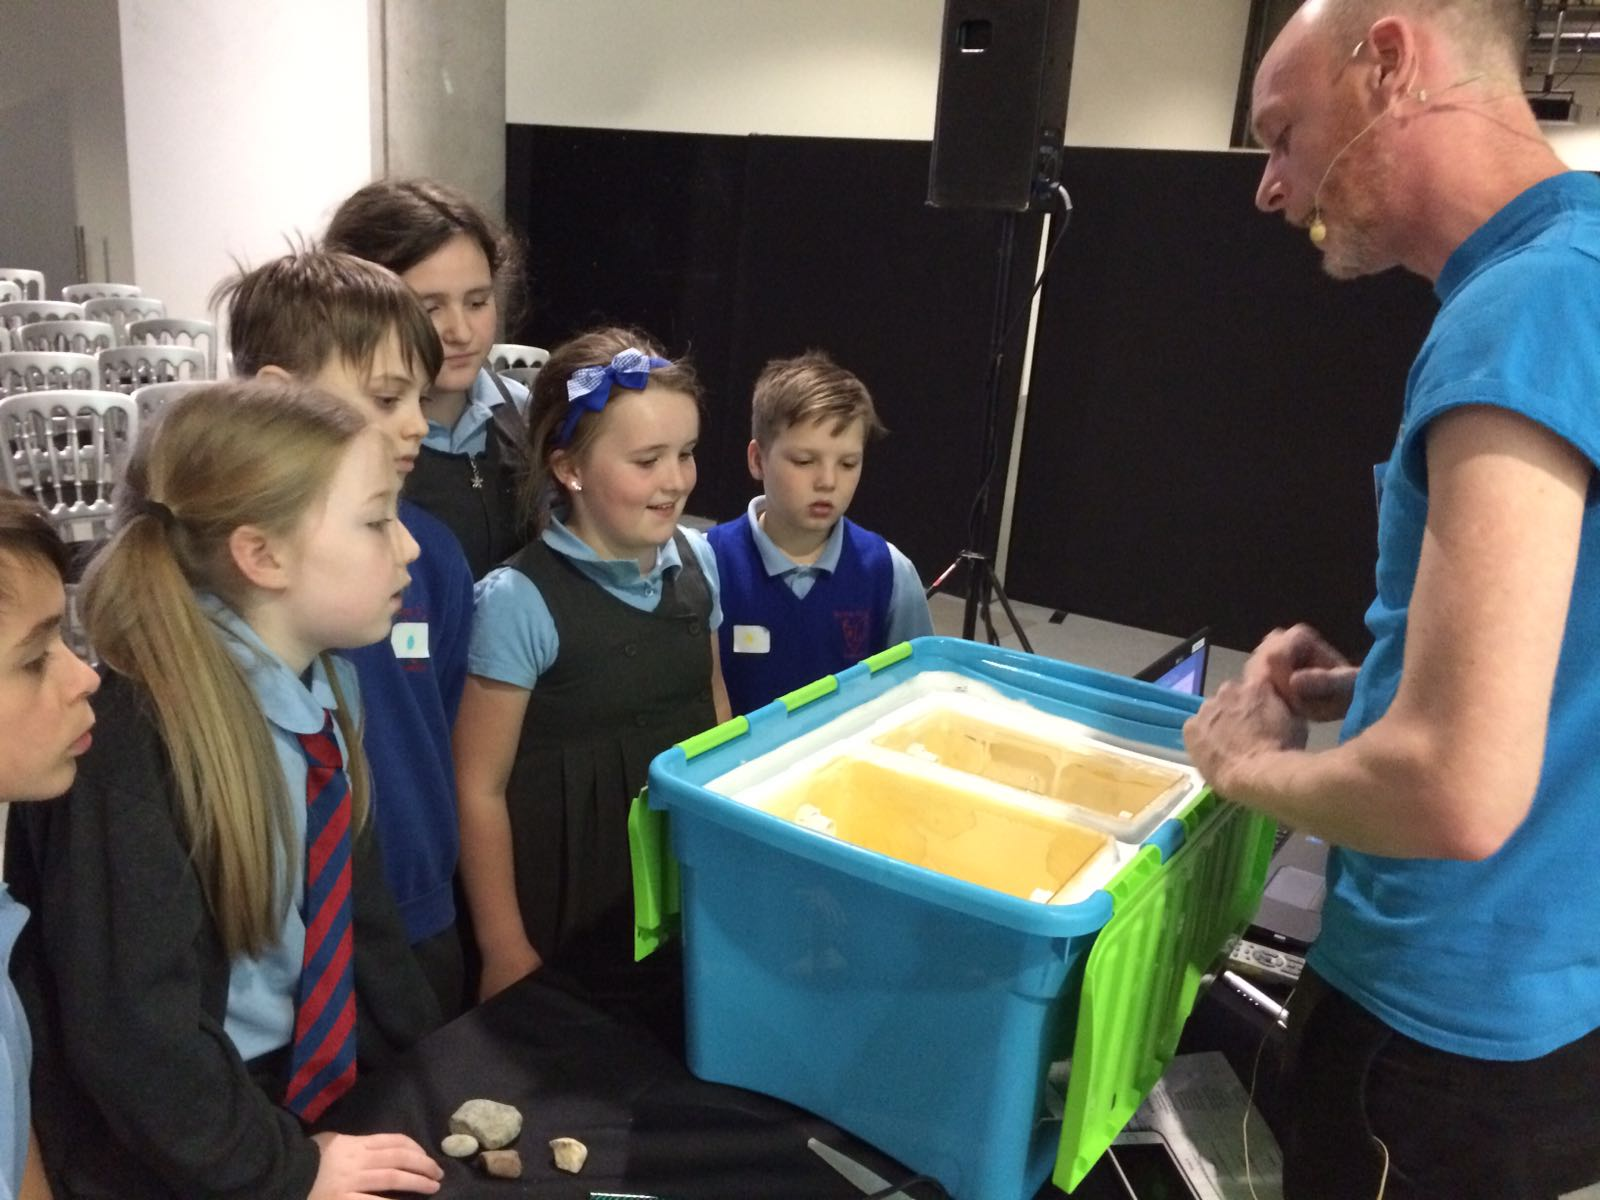 Wester Overton learn how to operate a classroom hatchery for their brown trout eggs at the launch of the Salmon Homecoming at Glasgow Science Centre on 19 January, Clyde River Foundation